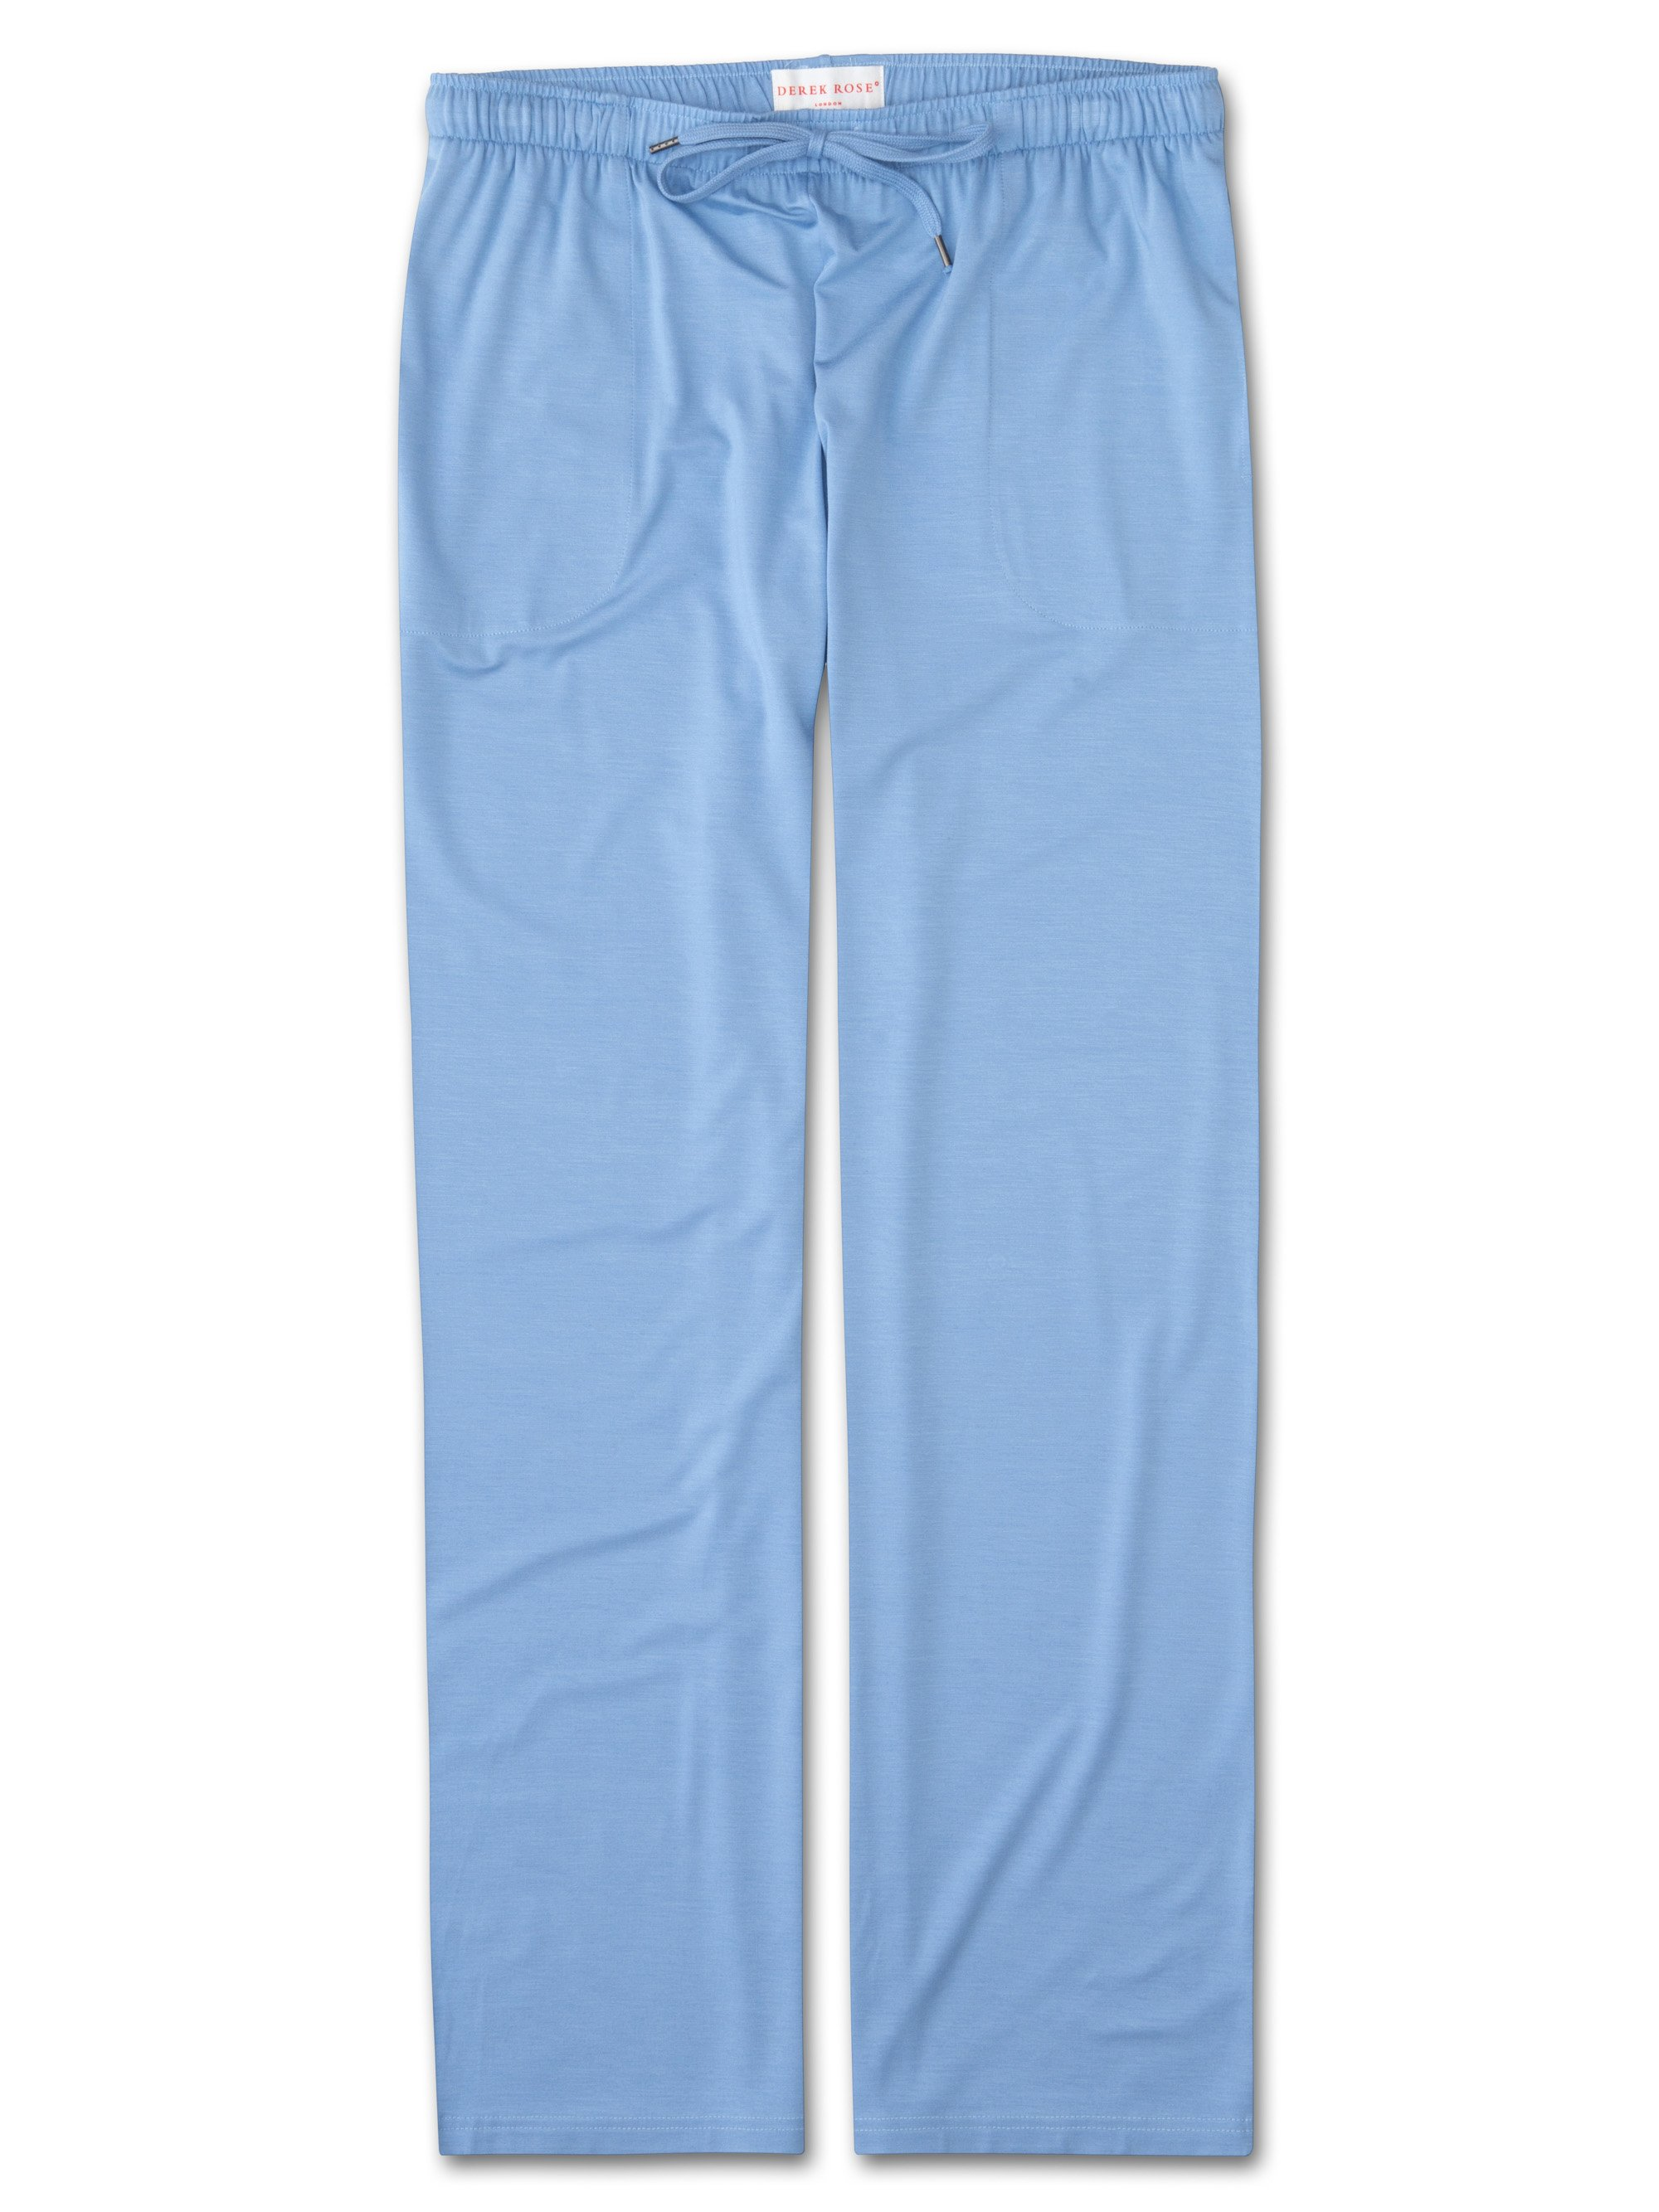 Men's Jersey Trousers Basel Micro Modal Stretch French